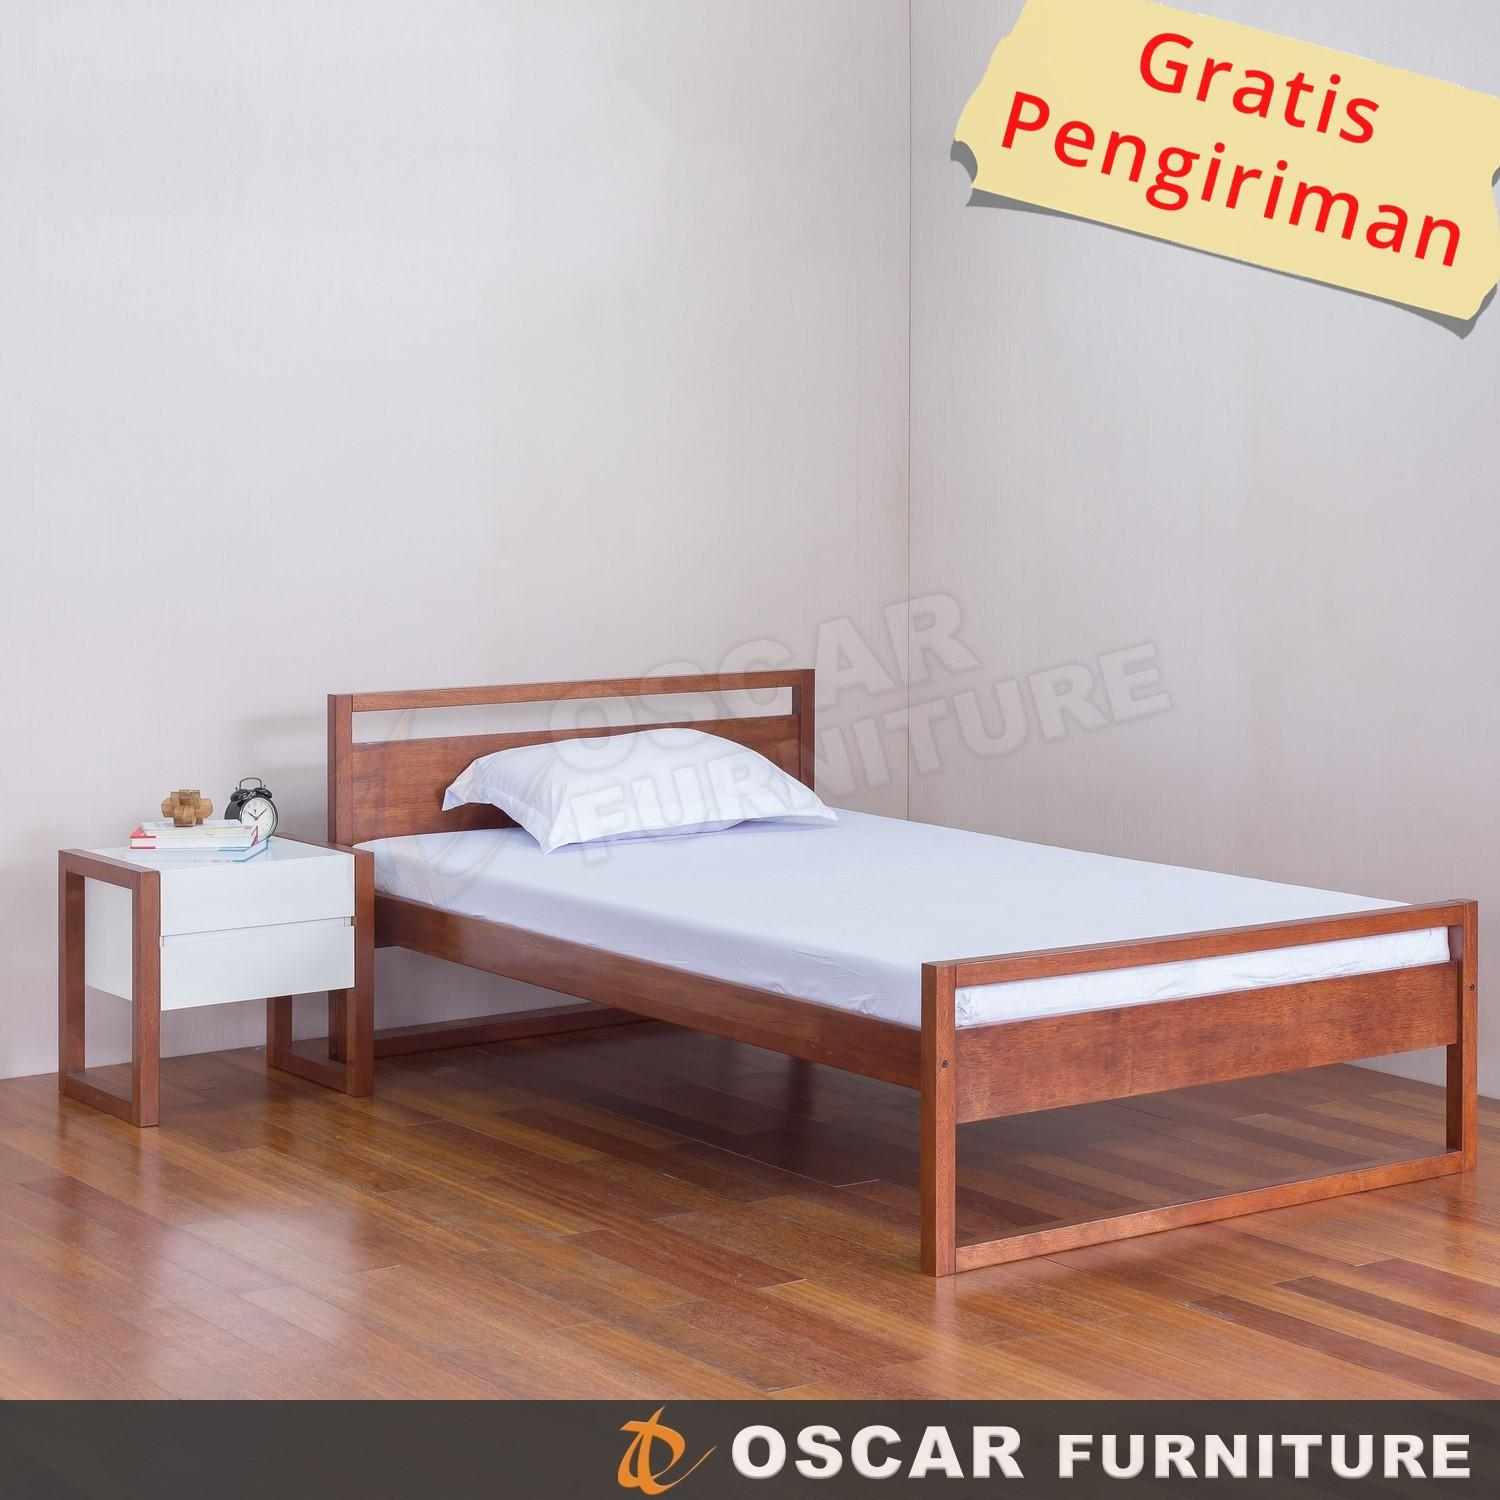 Oscar Furniture - Tempat Tidur Minimalis 120 X 200 (super Single) Seri Forte By Oscar Furniture.